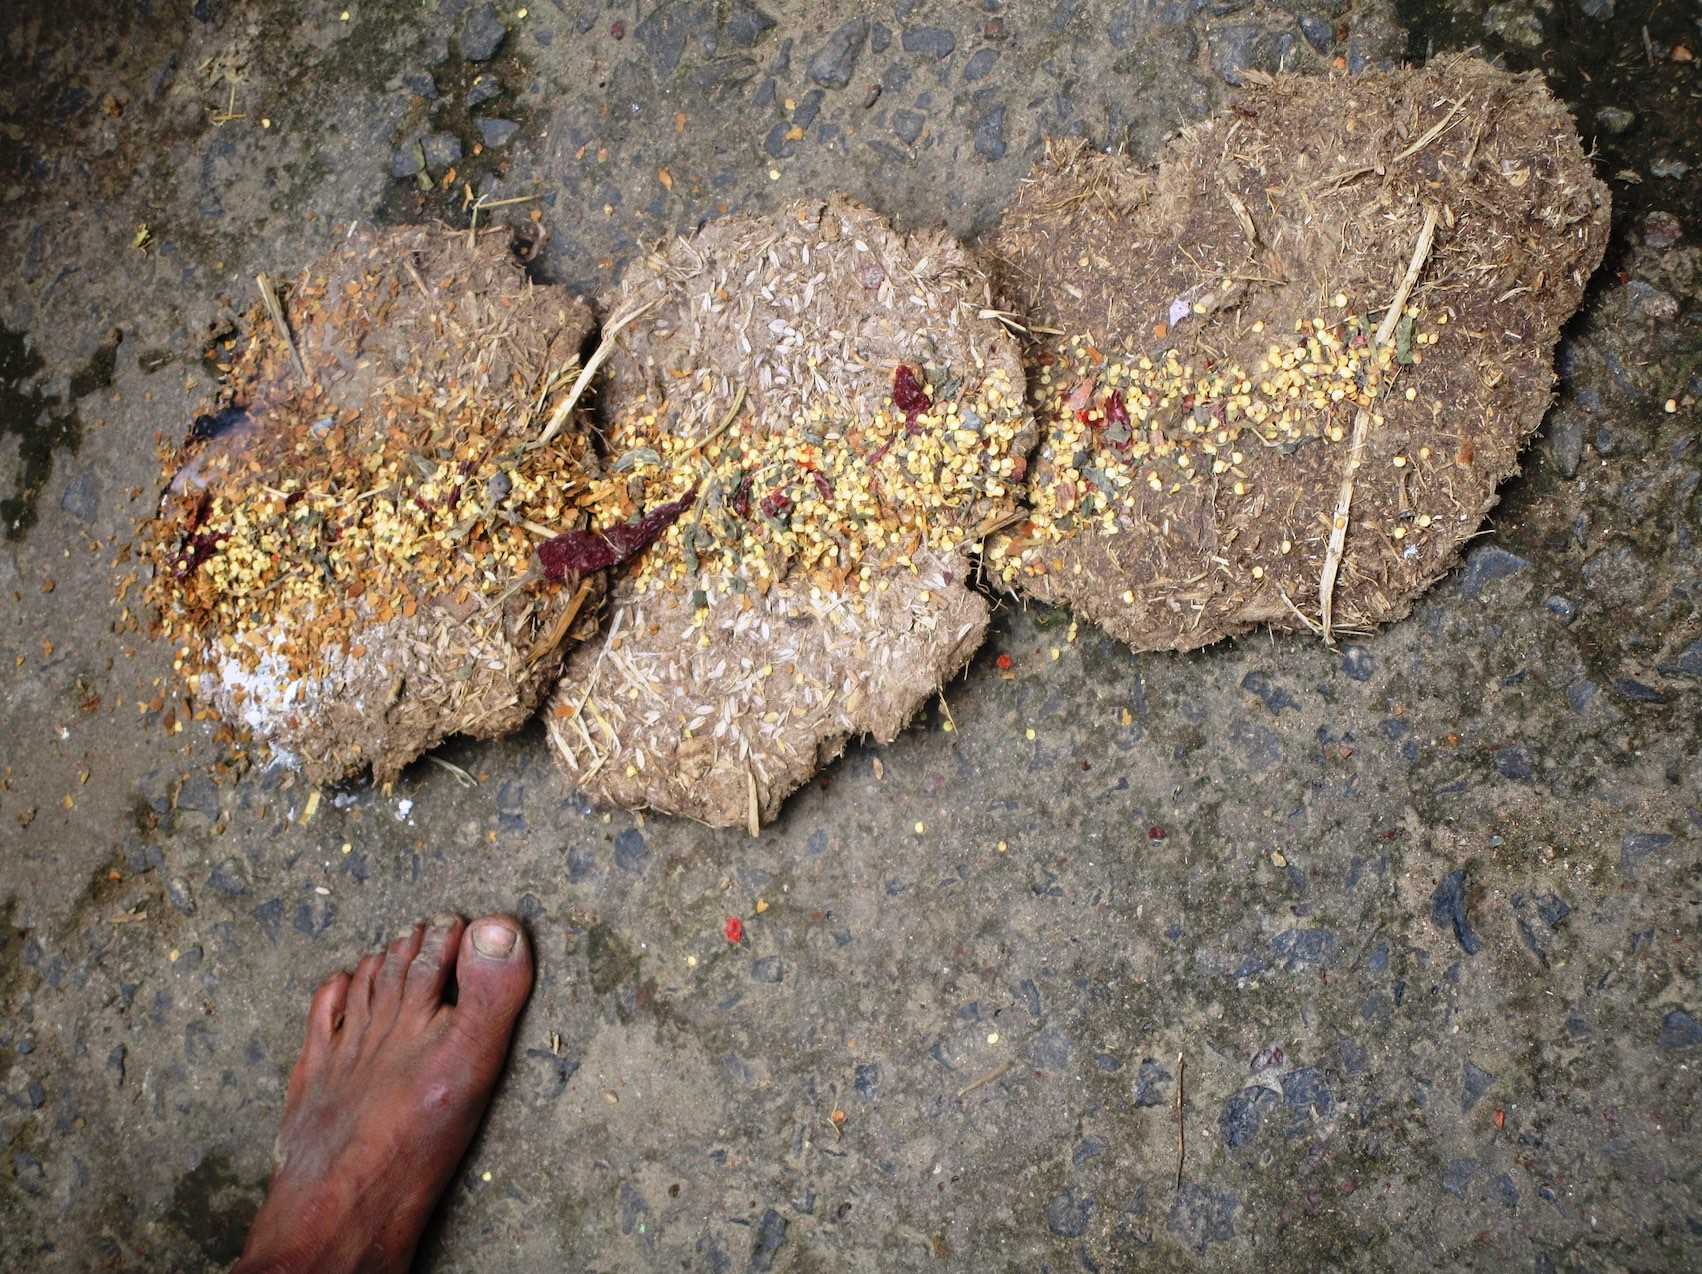 Dry cow dung cakes, waste chilli seeds and are burnt in the night to keep elephants away. Credit: Nidhi Jamwal